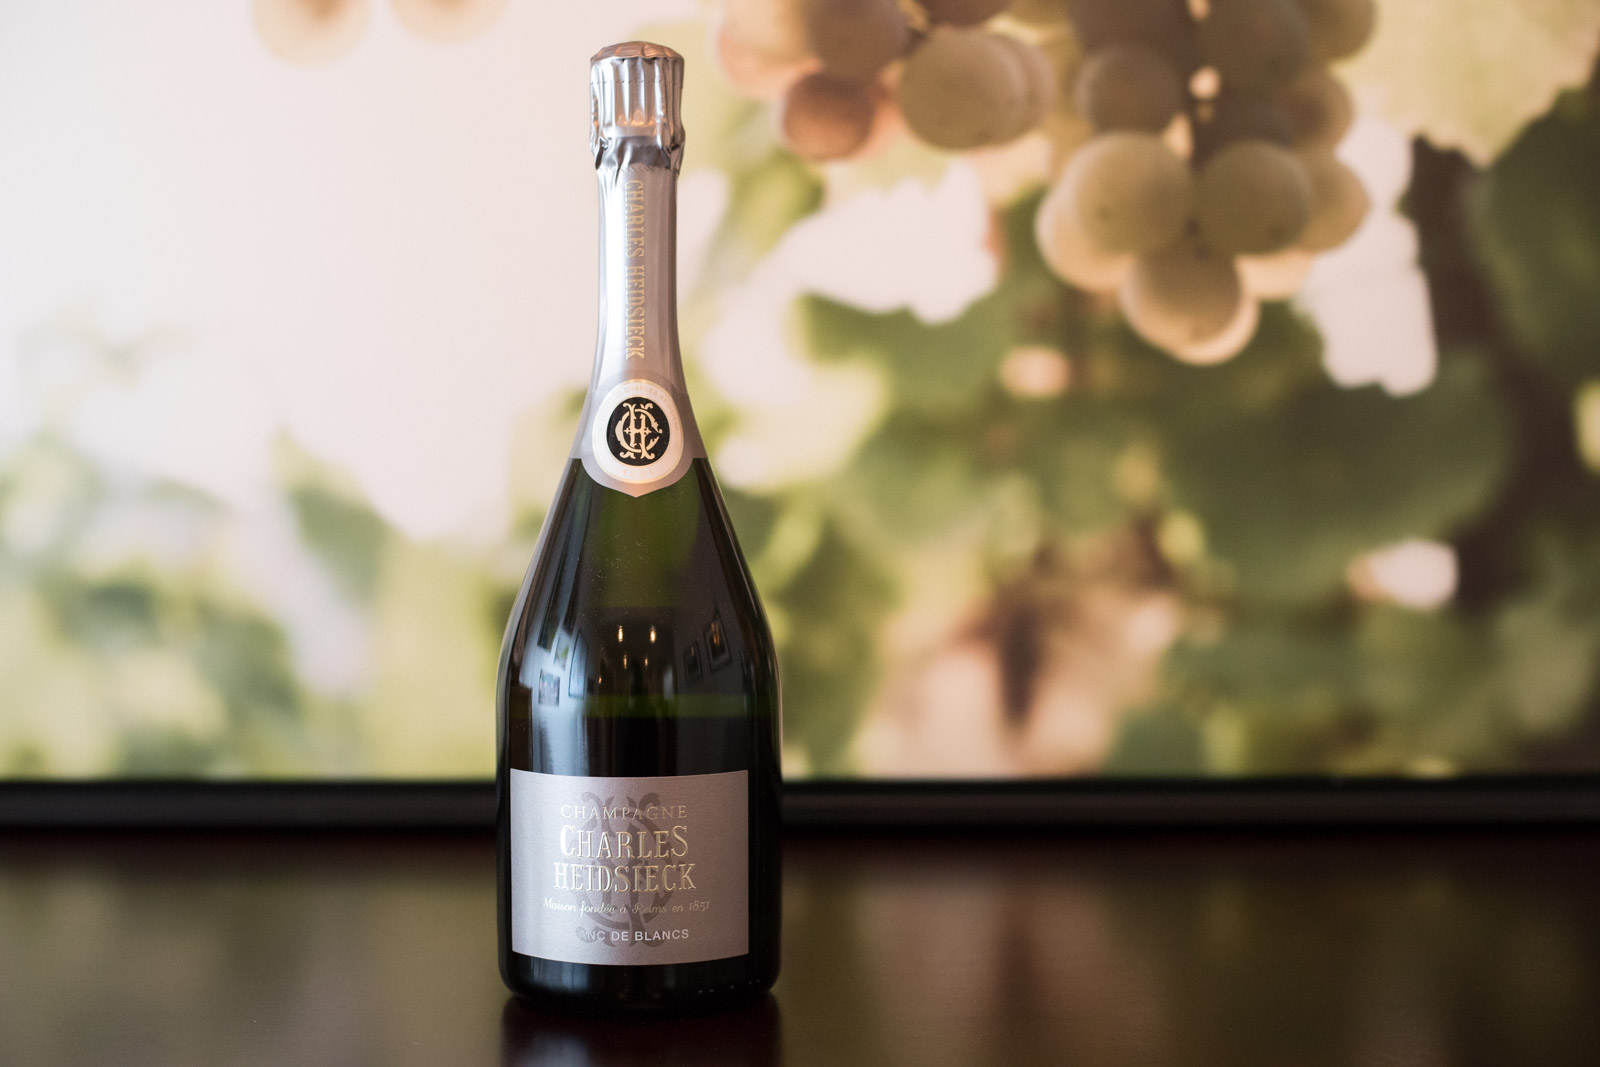 NV Charles Heidsieck Blanc de Blanc Champagne ©Kevin Day/Opening a Bottle